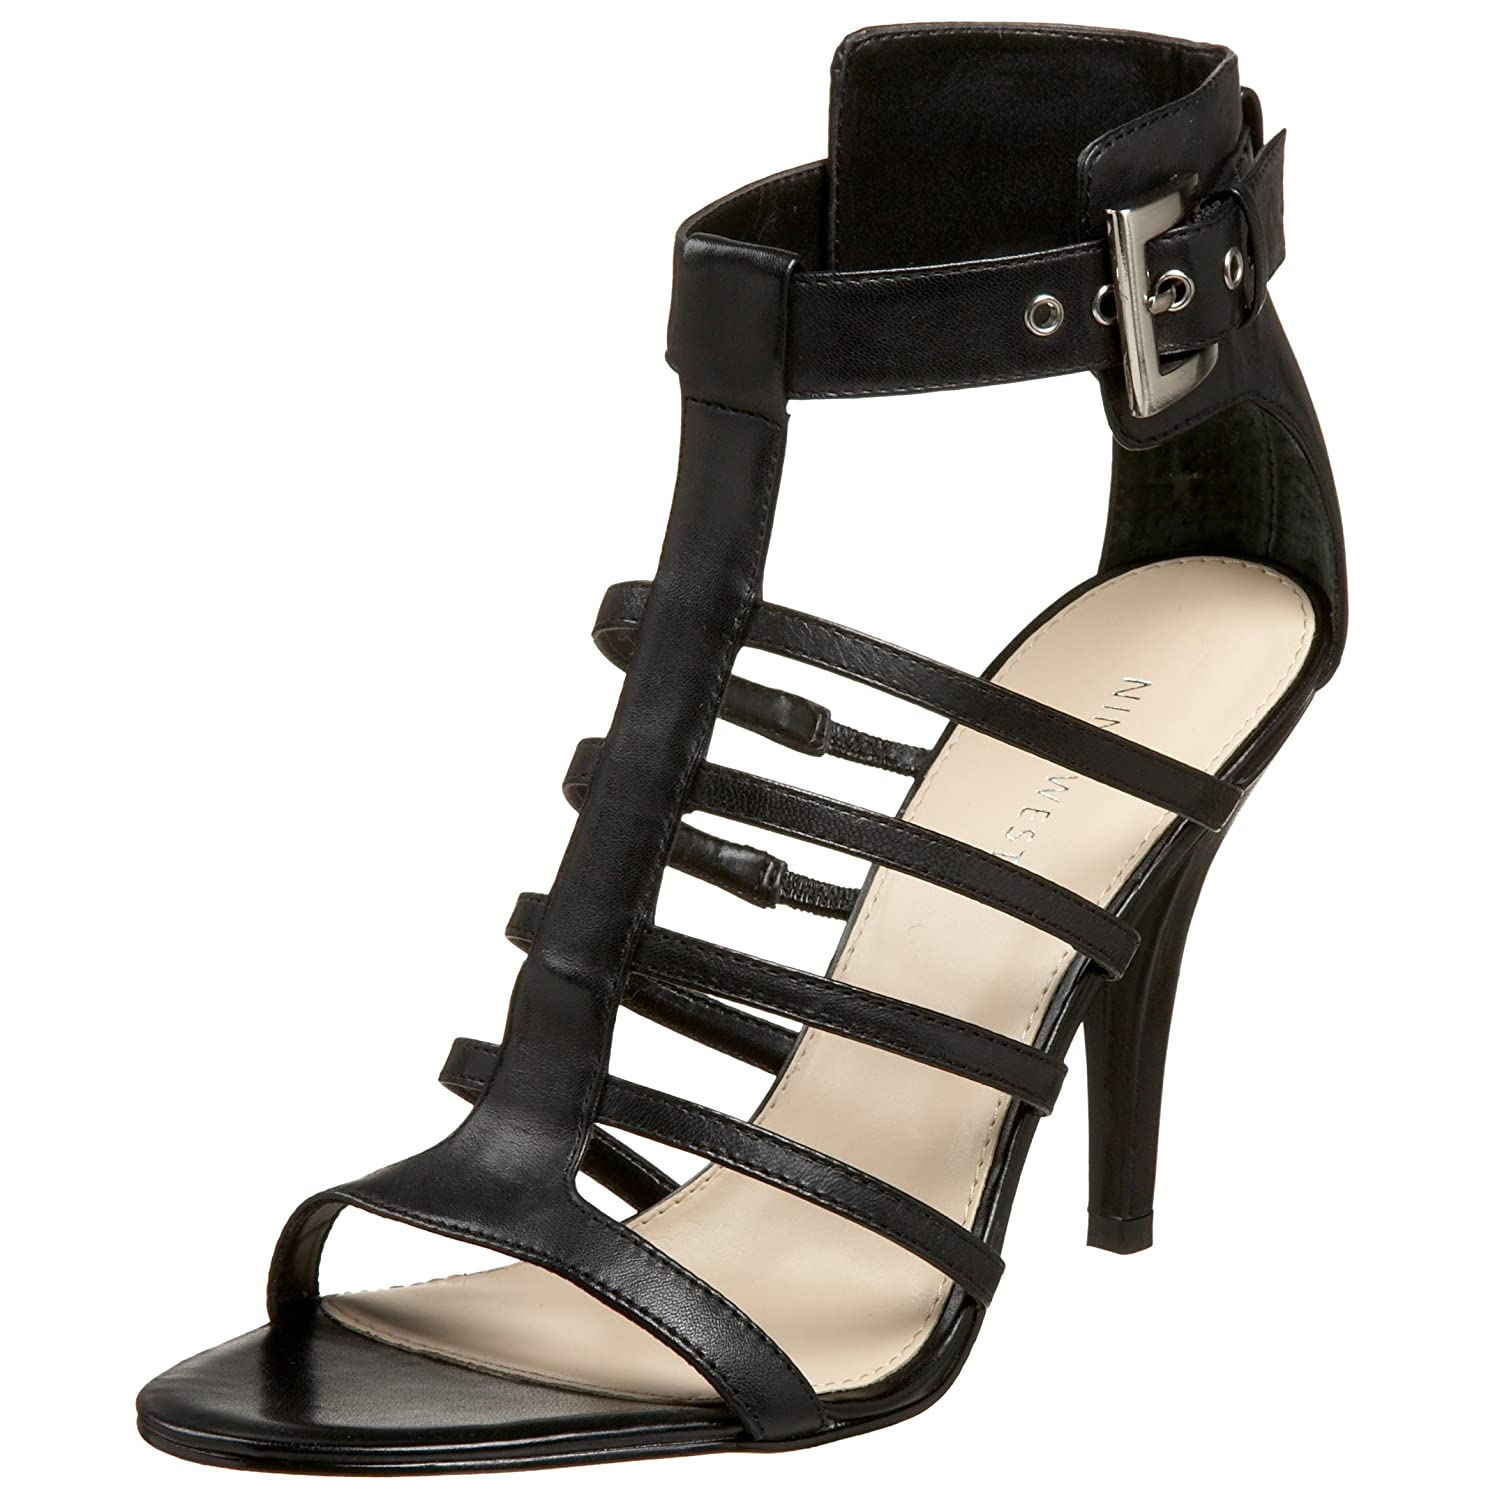 Nine West Women's Jamie Sandal - Free Overnight Shipping & Return Shipping: Endless.com from endless.com